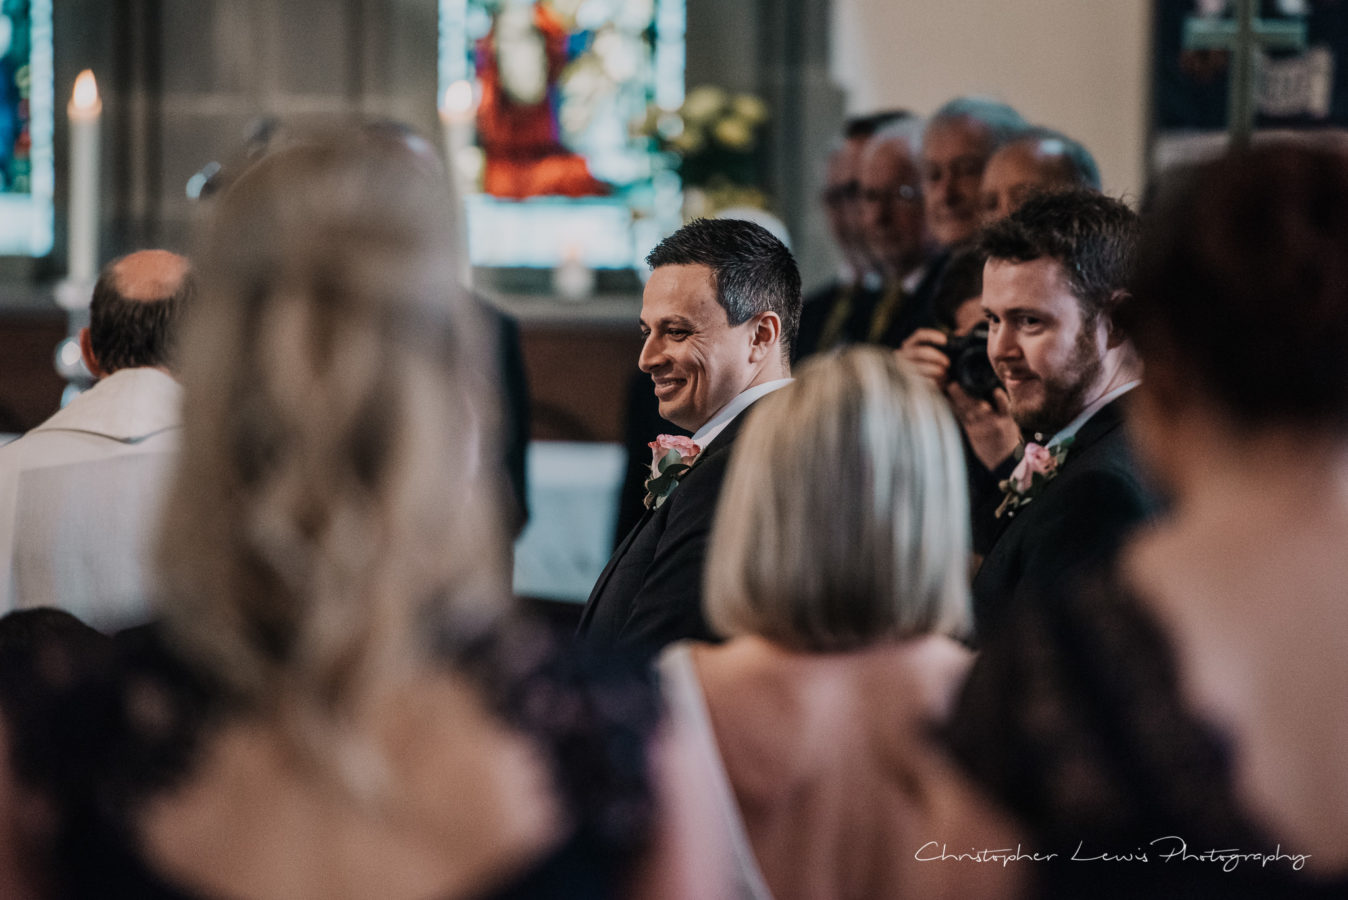 Thief-Hall-Wedding-Christopher-Lewis-Photography-22